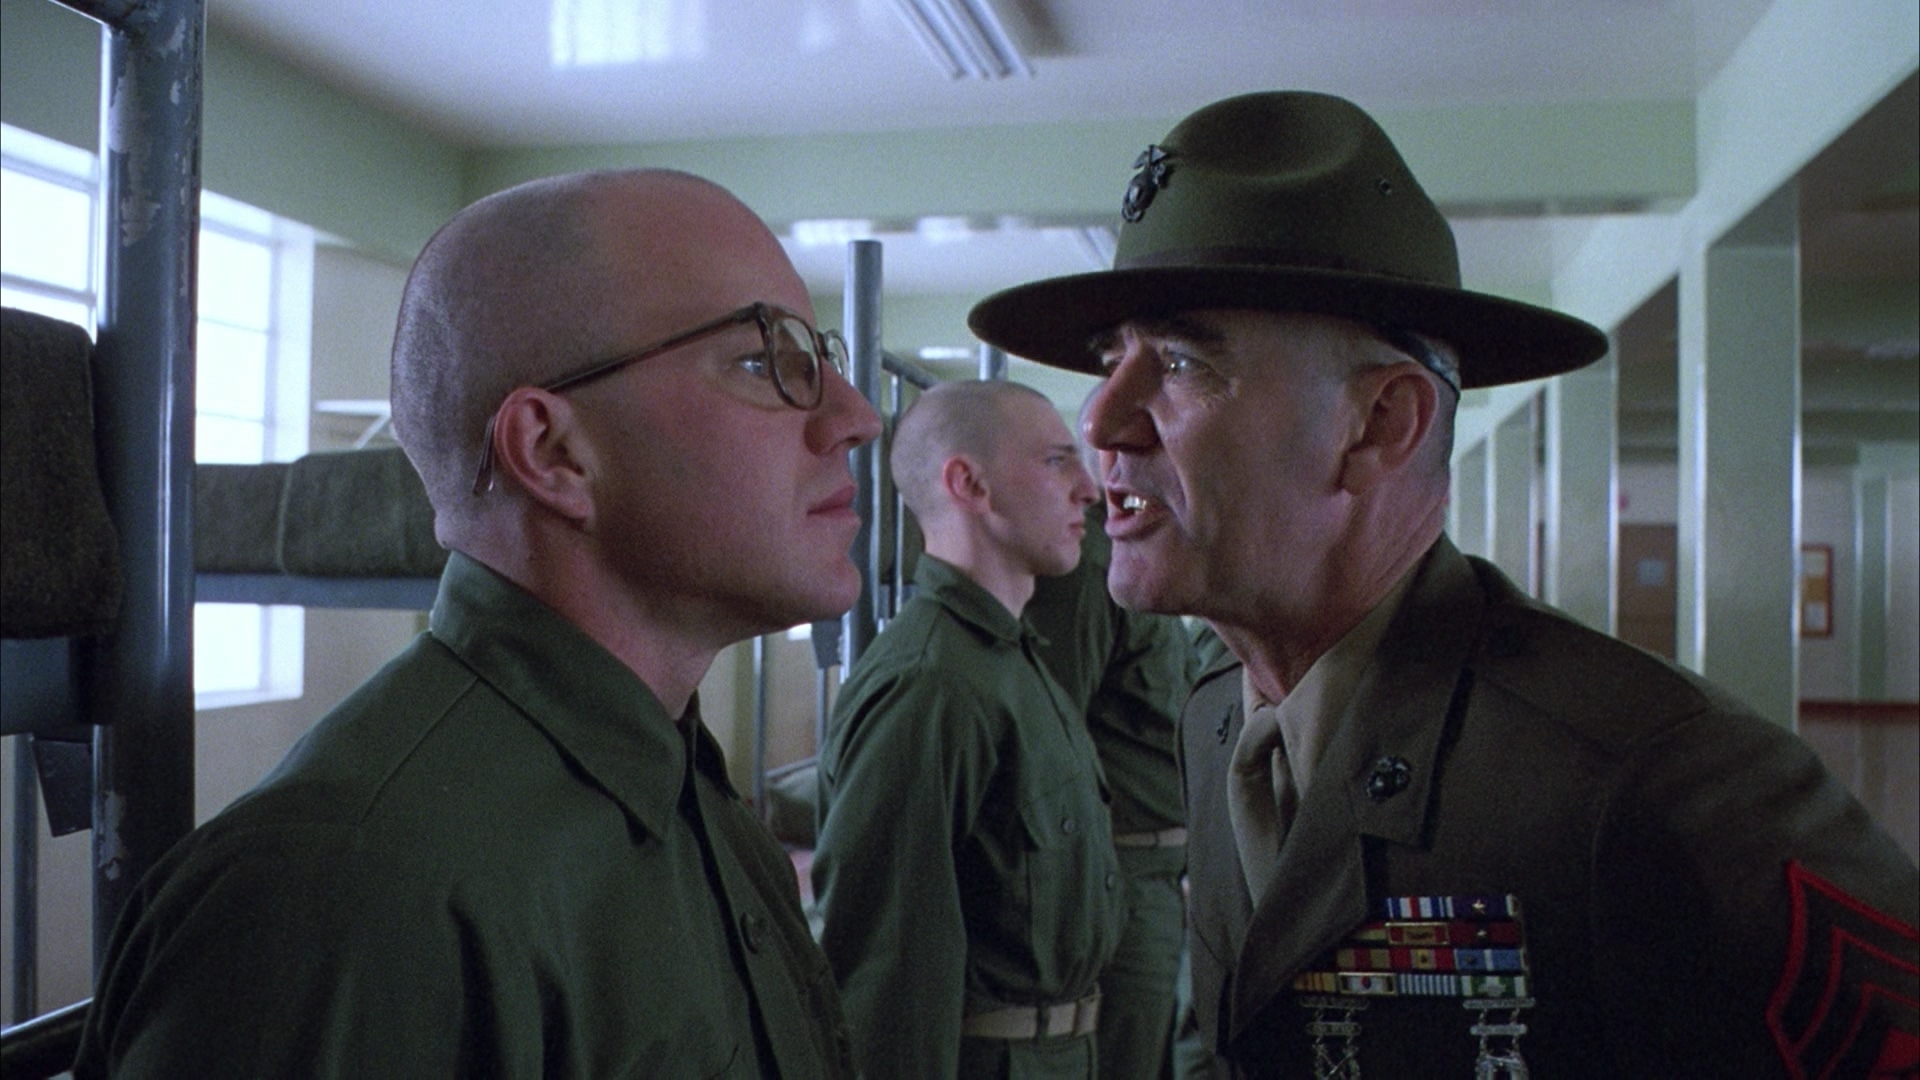 full metal jacket entertainment movies military soldiers actors drill uniform glasses mood emotion scared angry scream